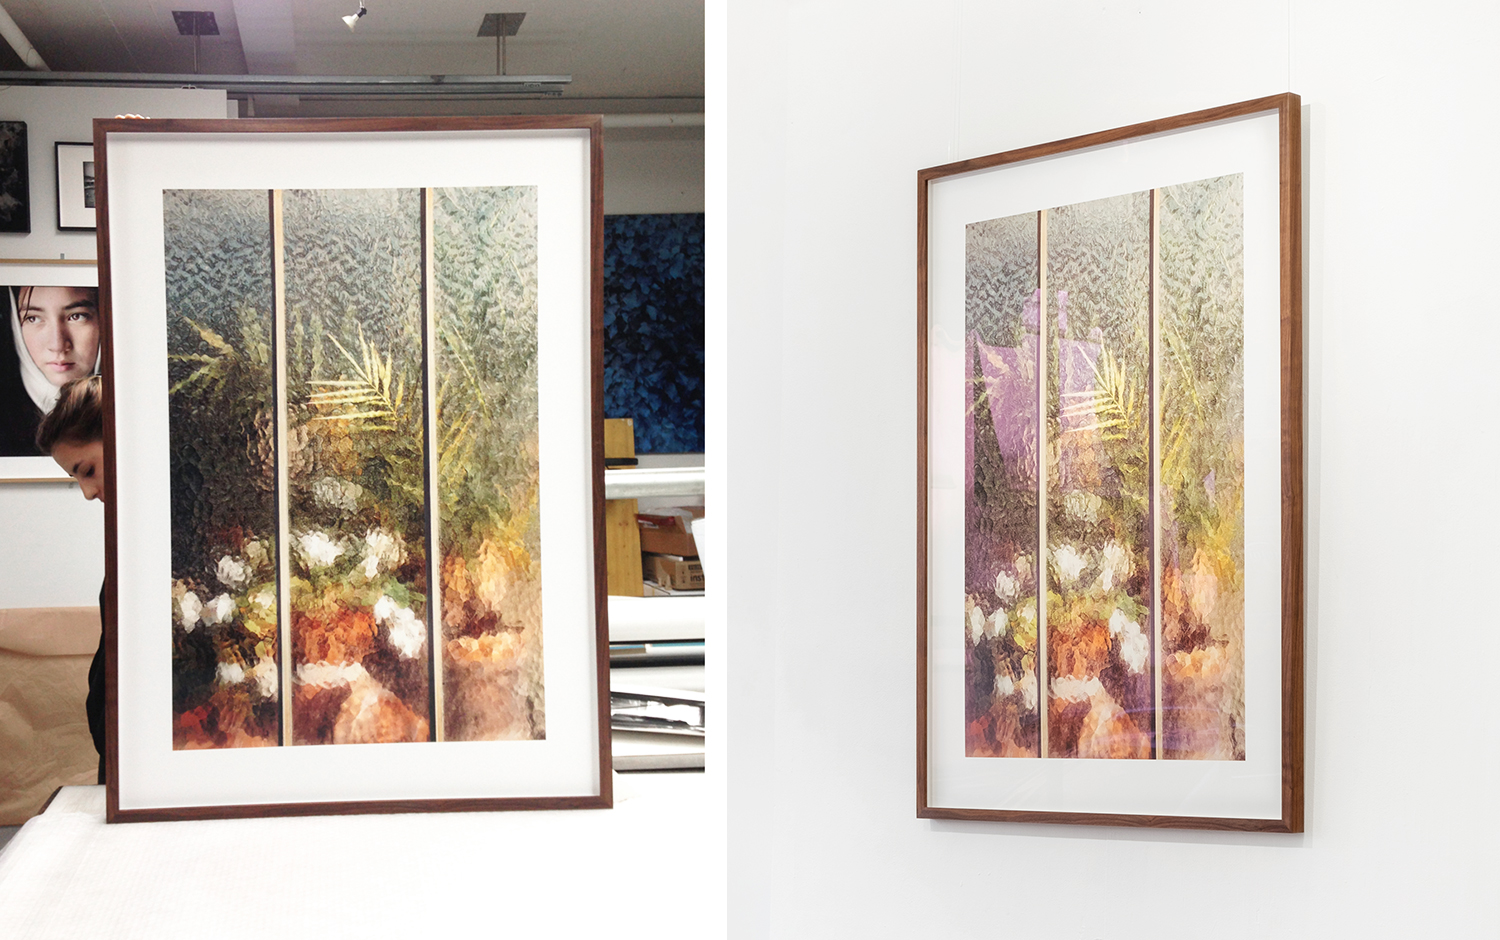 Arecaceae Palmae in 80x111cm - Solid oiled walnut frame, 1cm white spacer, museum grade glass (anti UV anti-reflective)